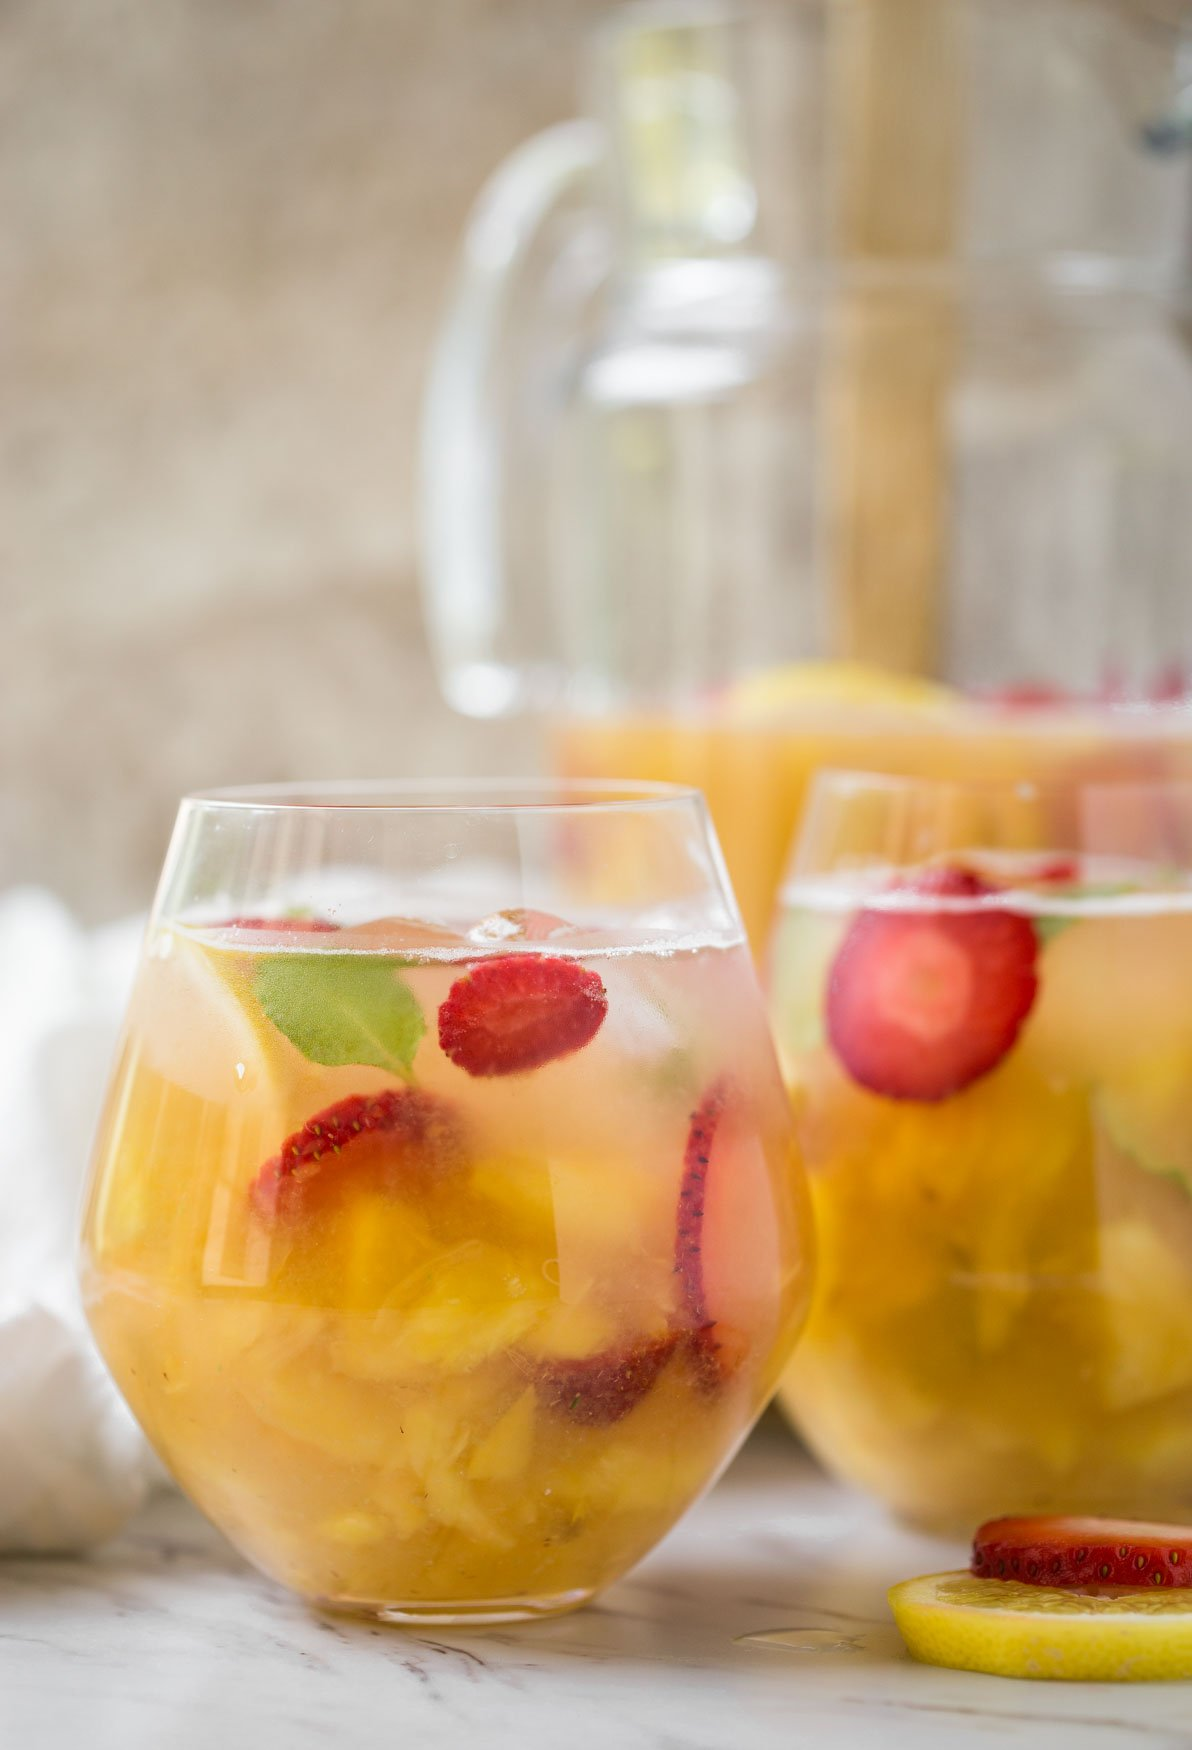 This pineapple strawberry sangria is a perfect non-alcoholic summer drink to enjoy fresh seasonal fruits and beat the summer heat. It is prepared using fresh strawberries and pineapple. | #watchwhatueat #nonalcoholic #summerdrink #strawberry #nonalcoholicsangria #sangria